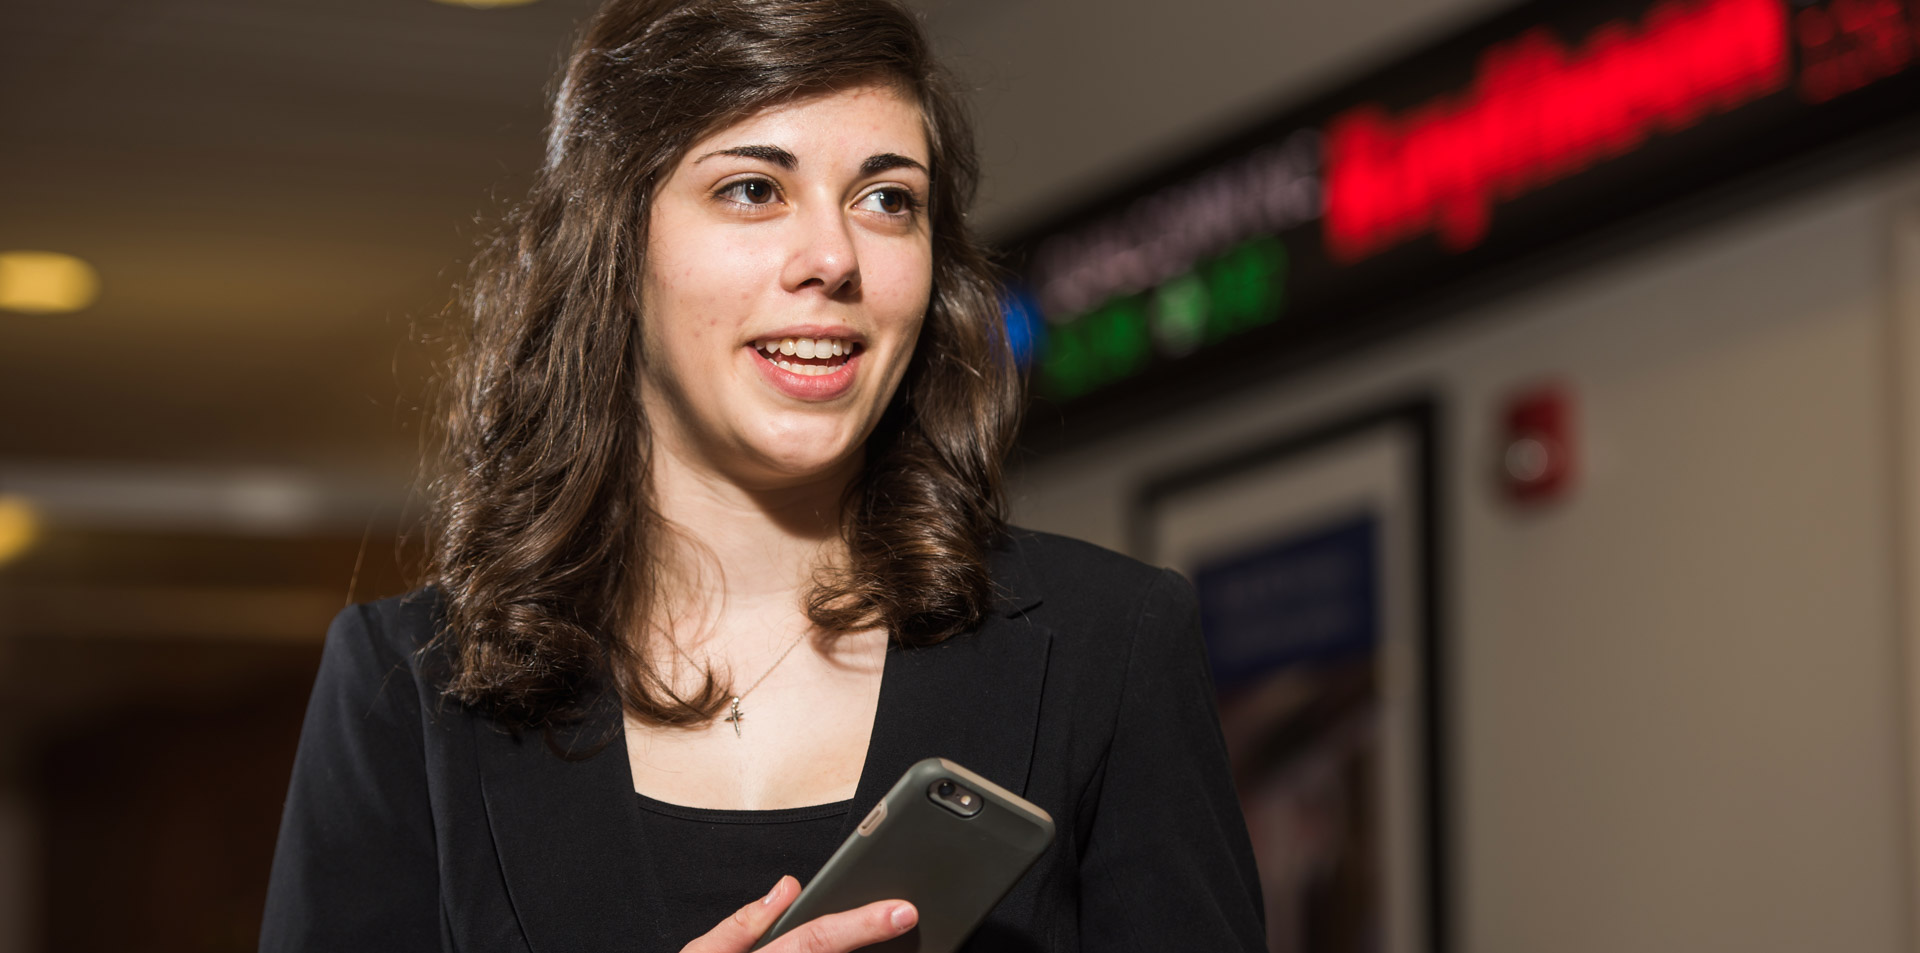 Student photographed near the electronic ticker outside Behrend's simulated trading floor